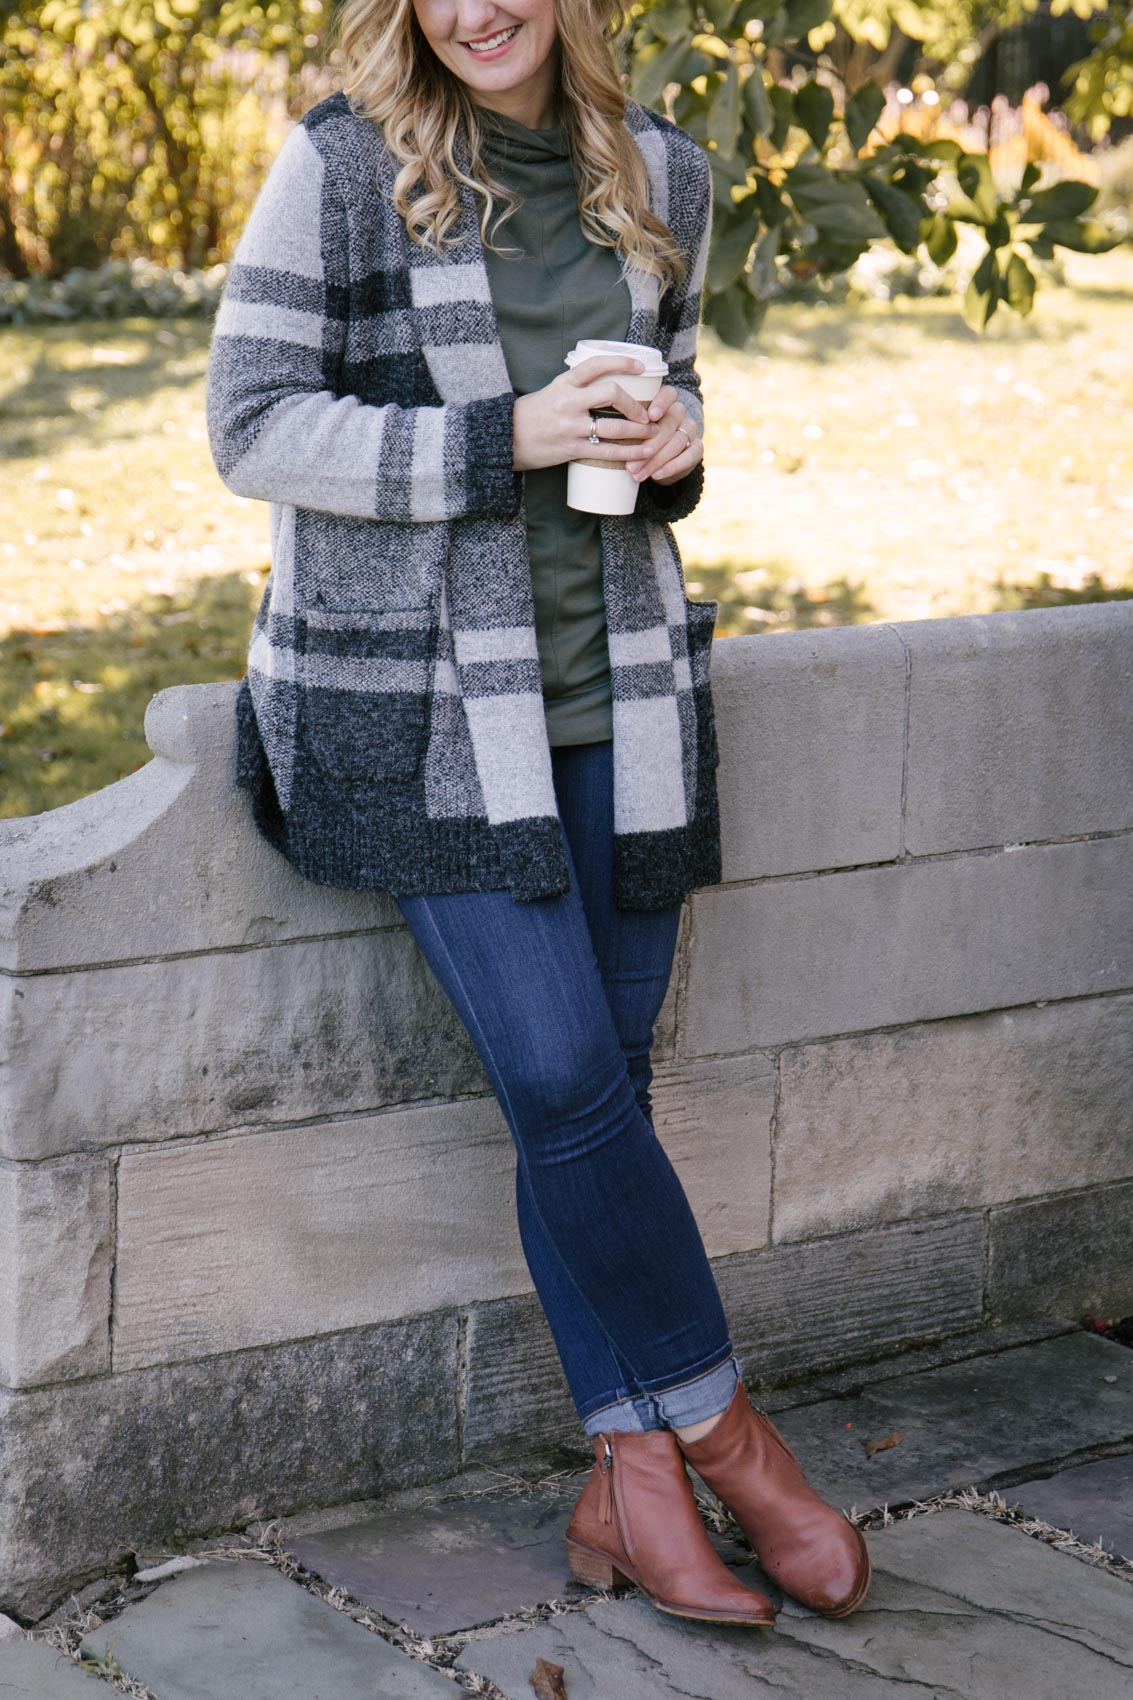 Allyn Lewis styles a casual fall outfit with a cozy plaid cardigan, olive mock neck top, dark wash skinny jeans, and brown leather ankle booties.